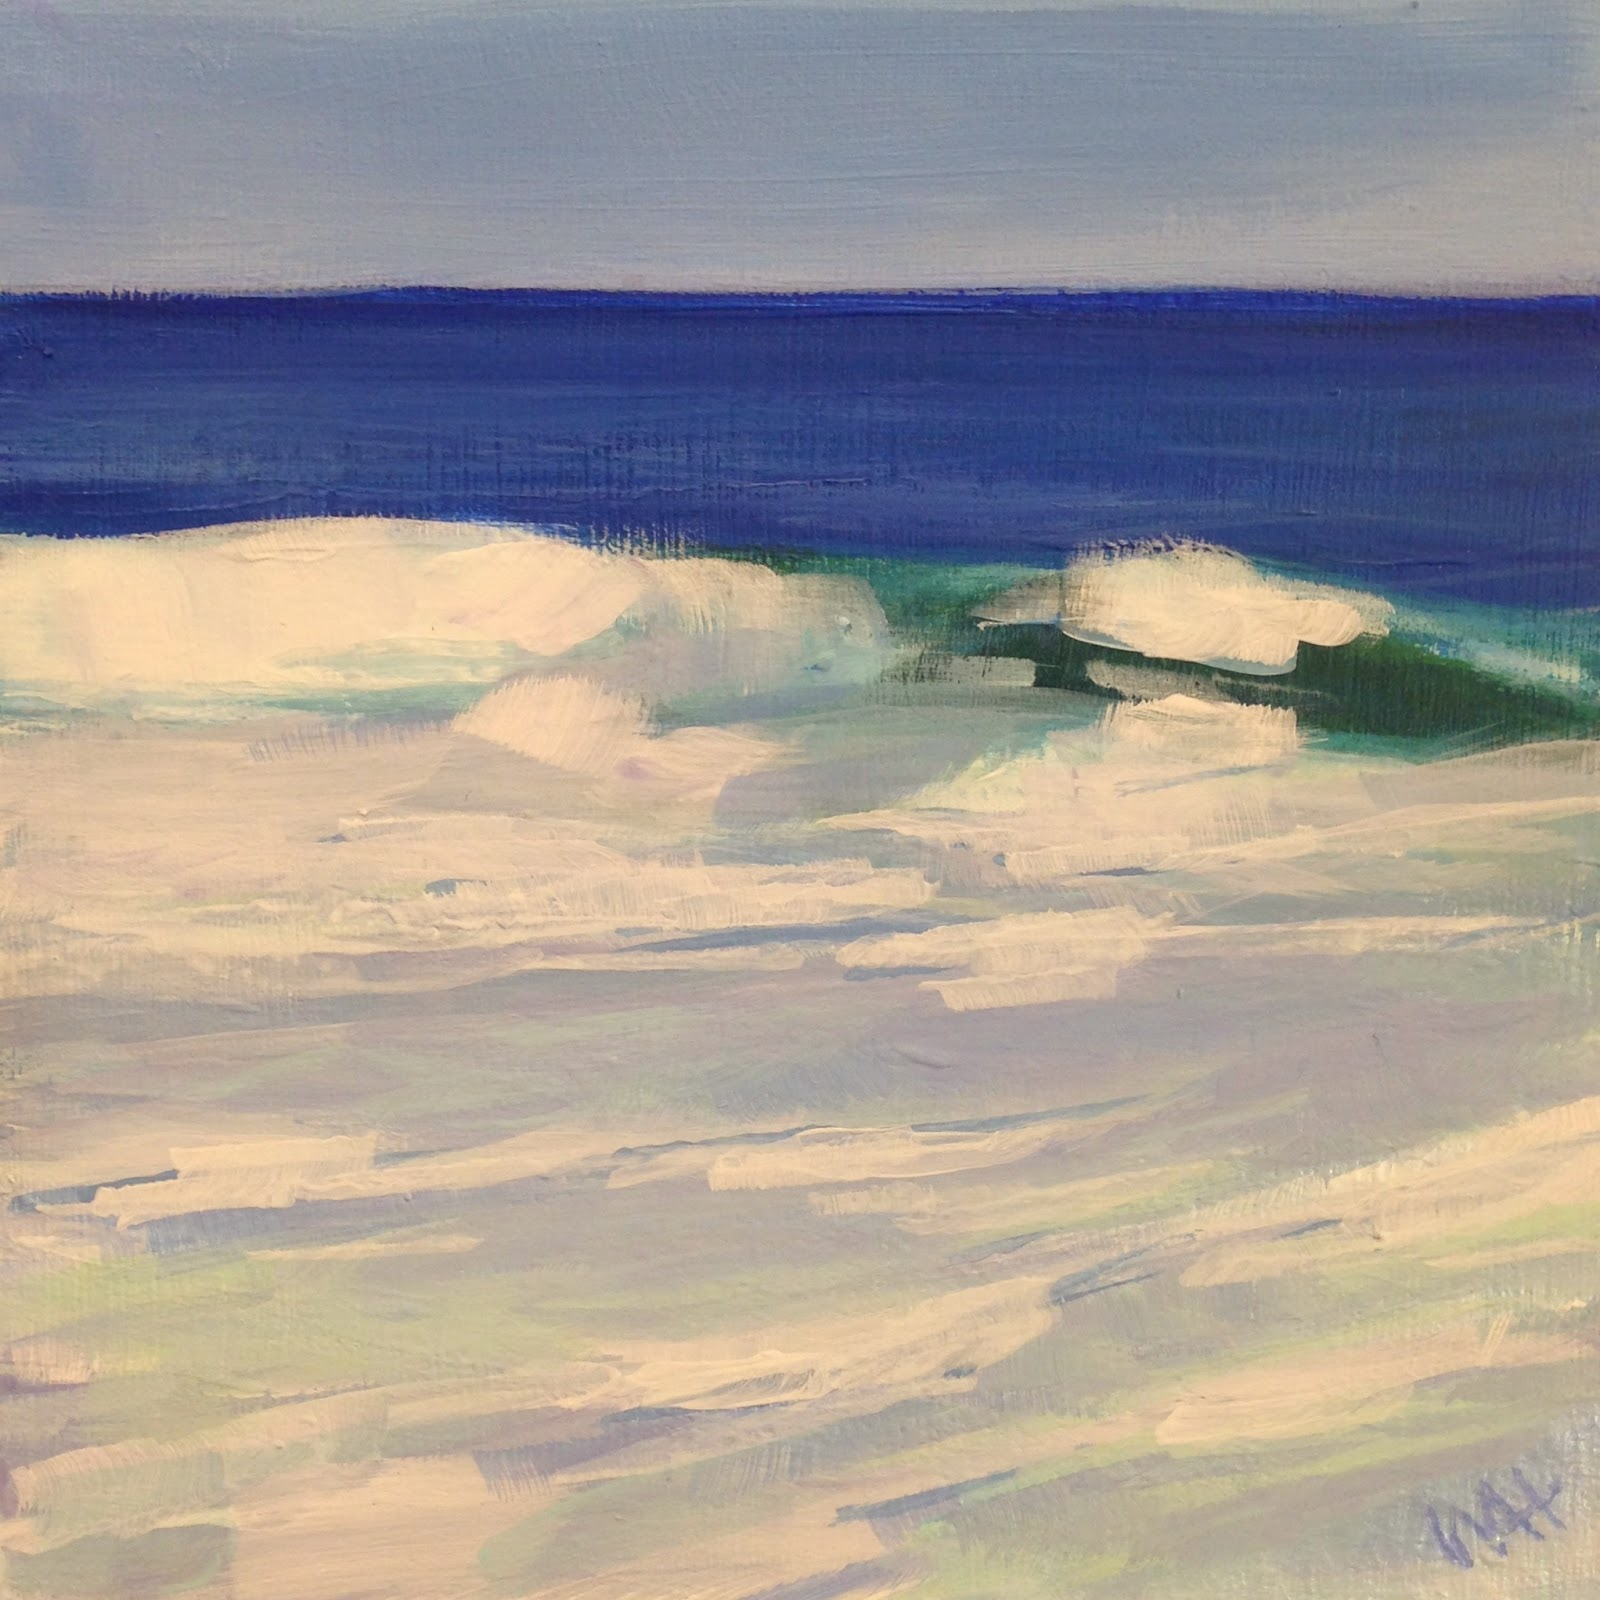 Ocean painting by Cape Cod artist